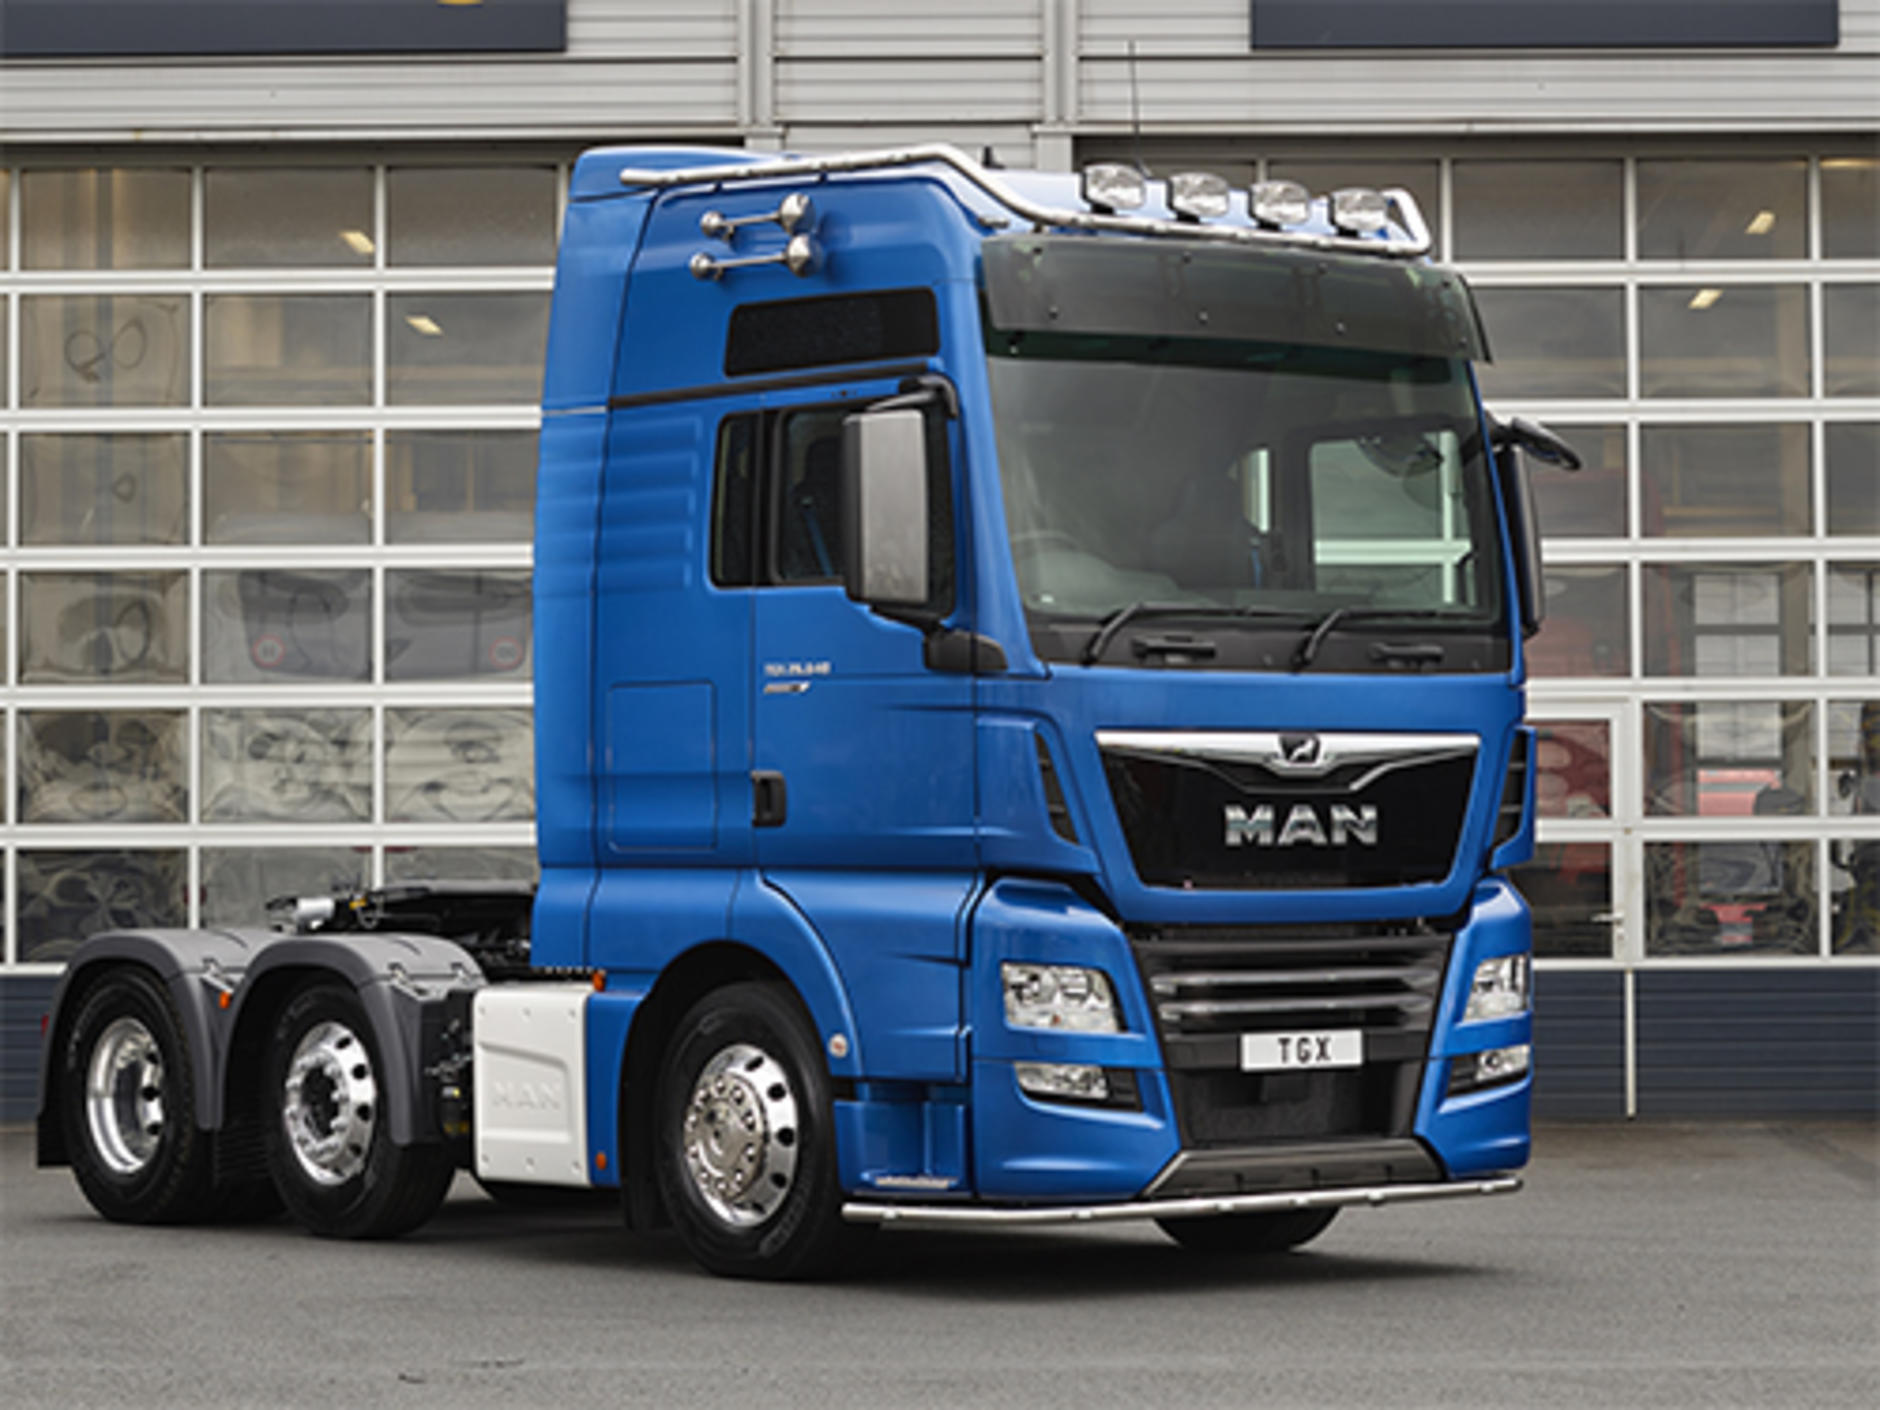 MAN Truck & Bus UK is presenting a strong future-proof portfolio of ...